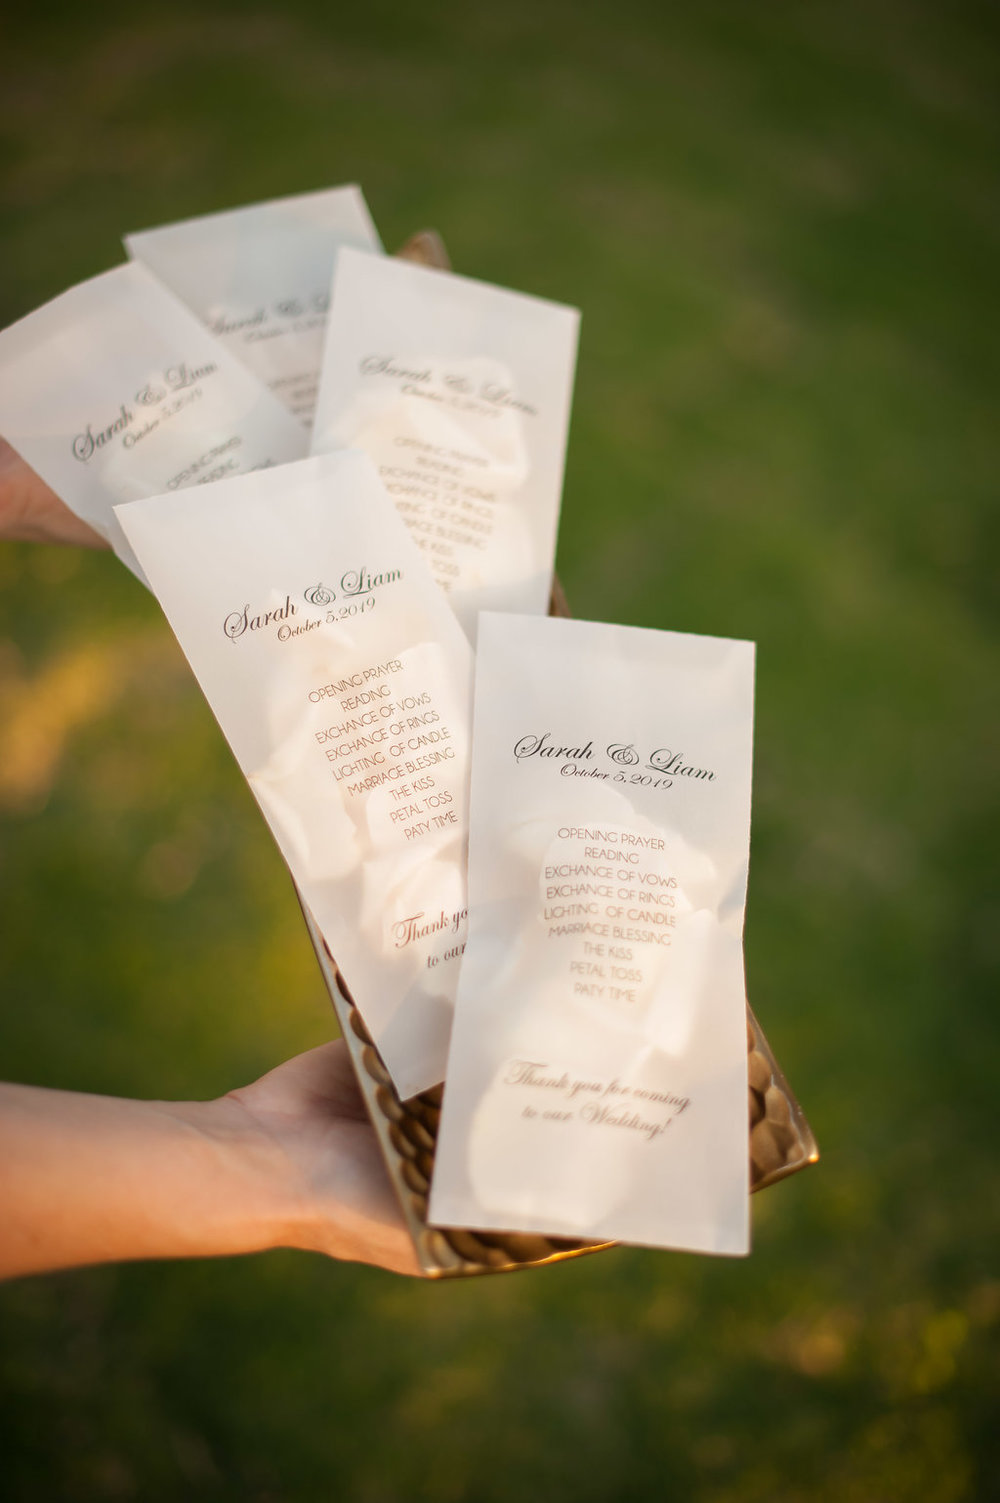 Glassine envelopes, printed with the program, were filled with ivory rose petals and handed out during the ceremony to use during the send off of the couple.